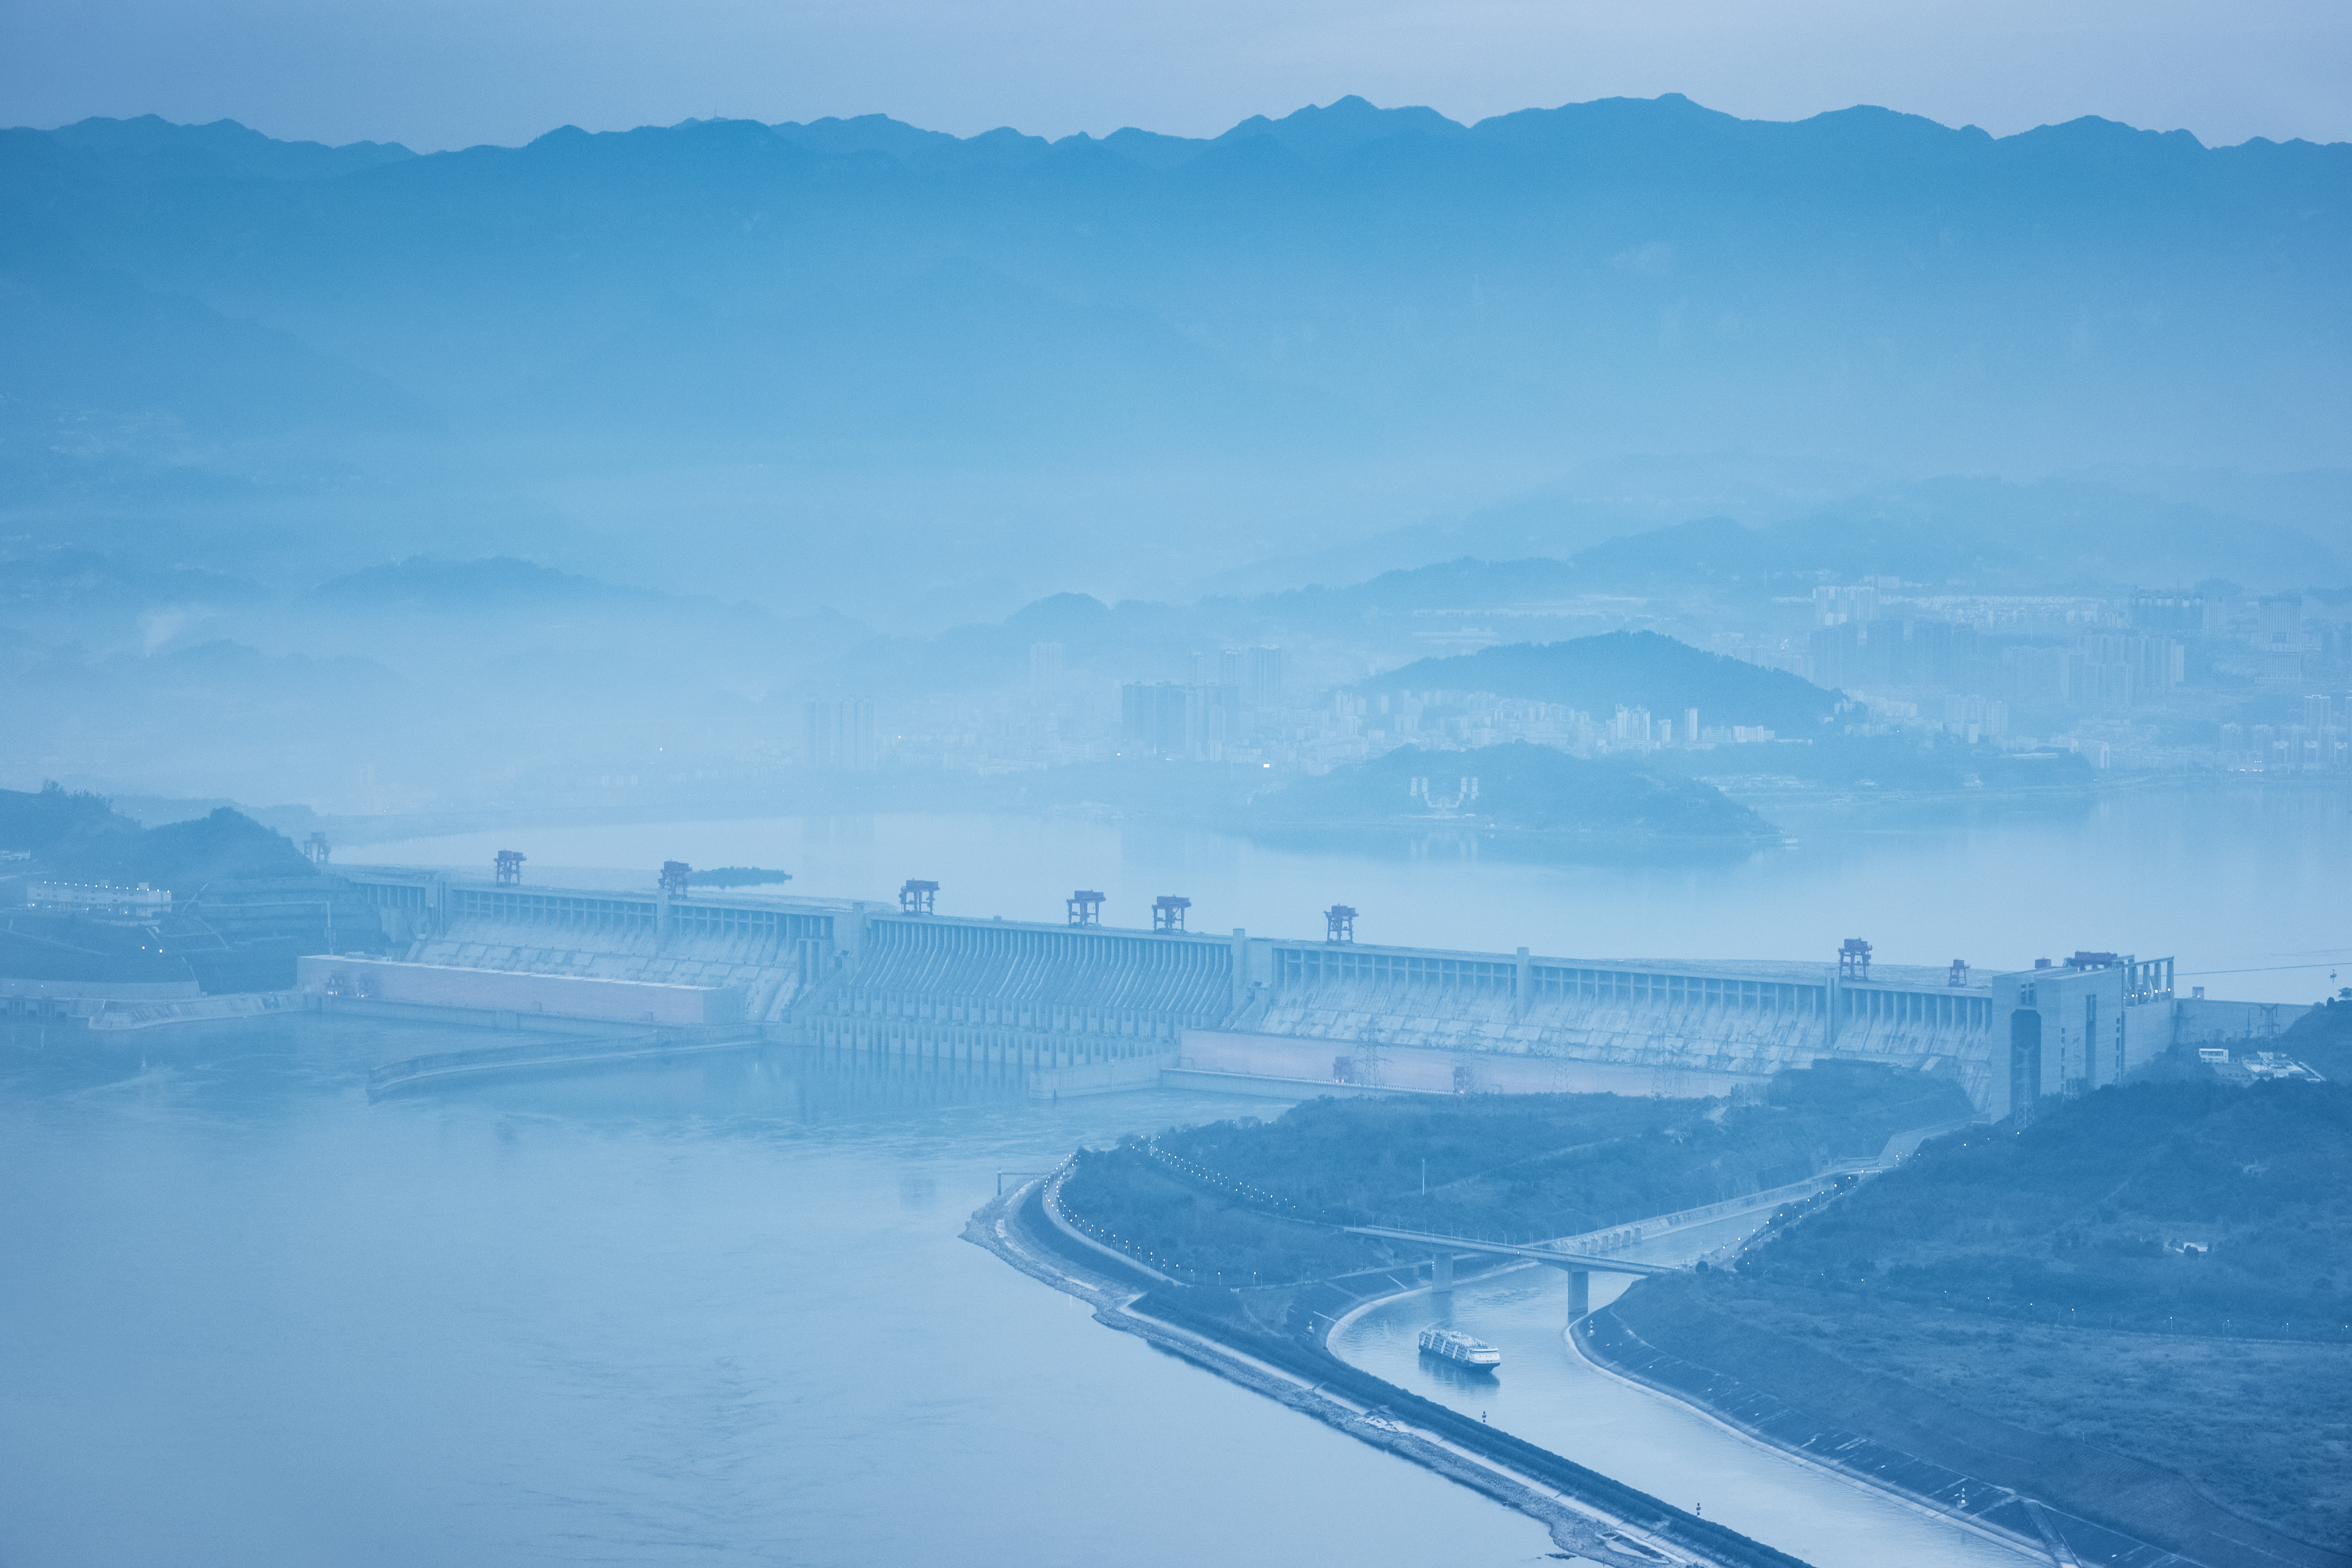 three-gorges-dam-at-dusk-with-blue-tone-WXZX953